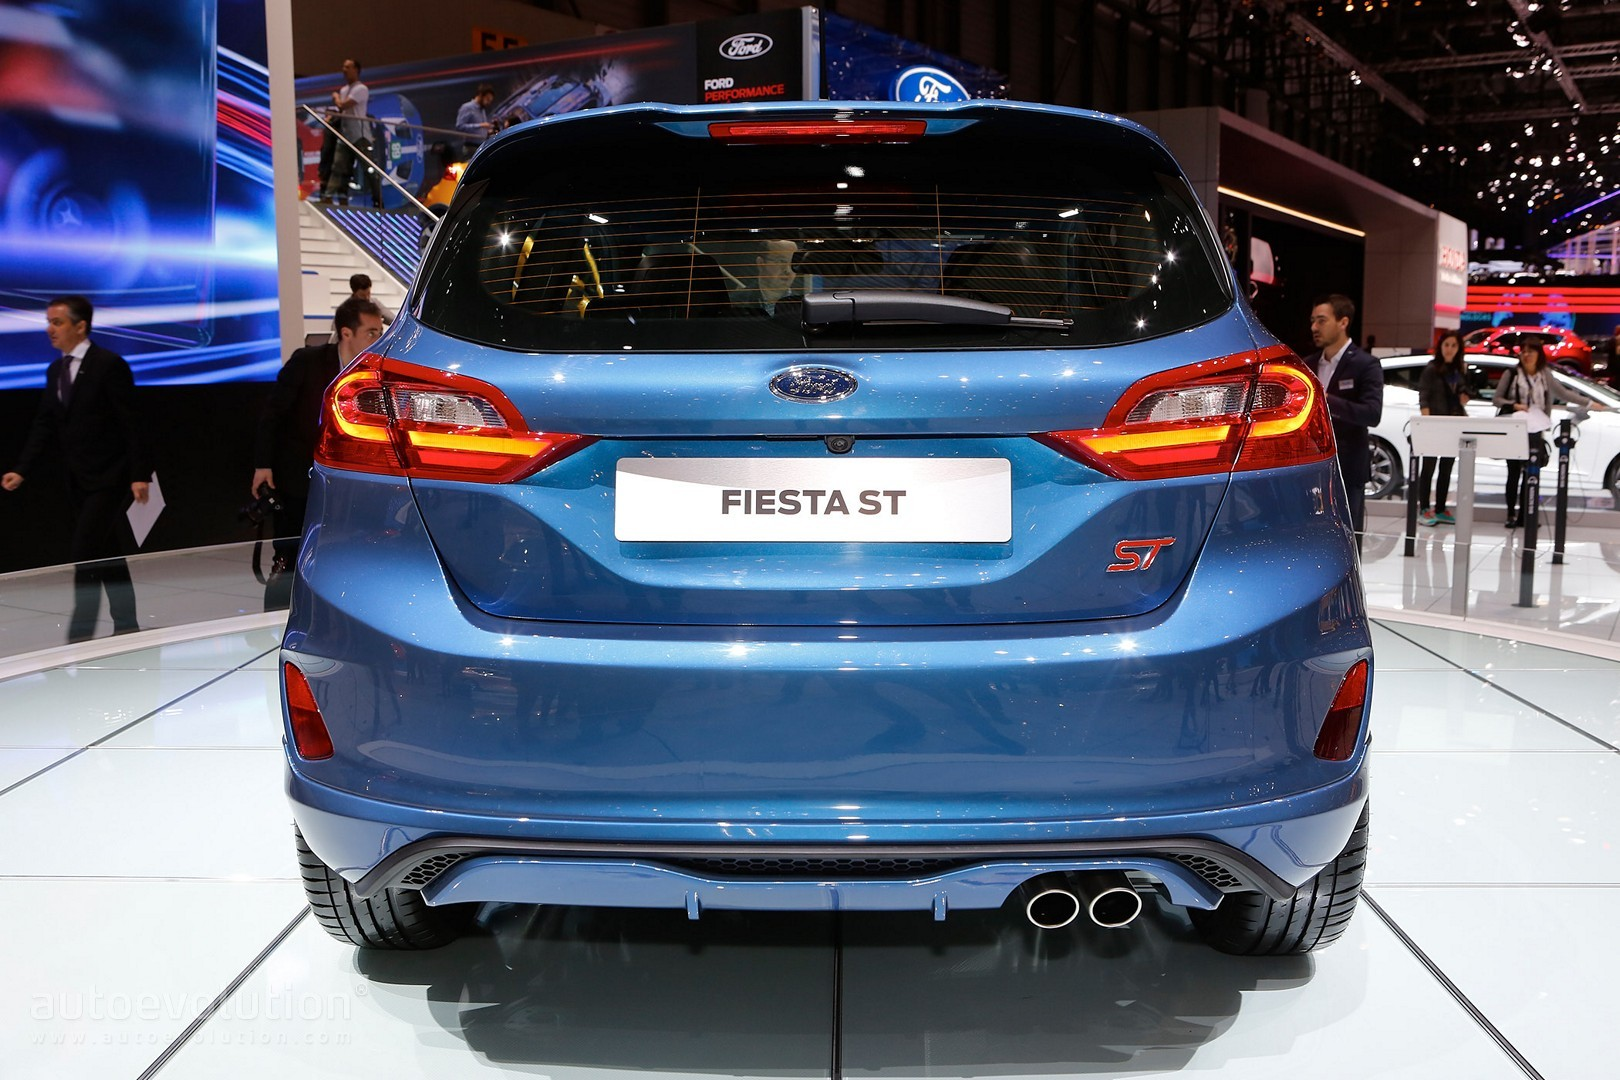 2018 ford fiesta st goes live in geneva has it got enough cylinders autoevolution. Black Bedroom Furniture Sets. Home Design Ideas